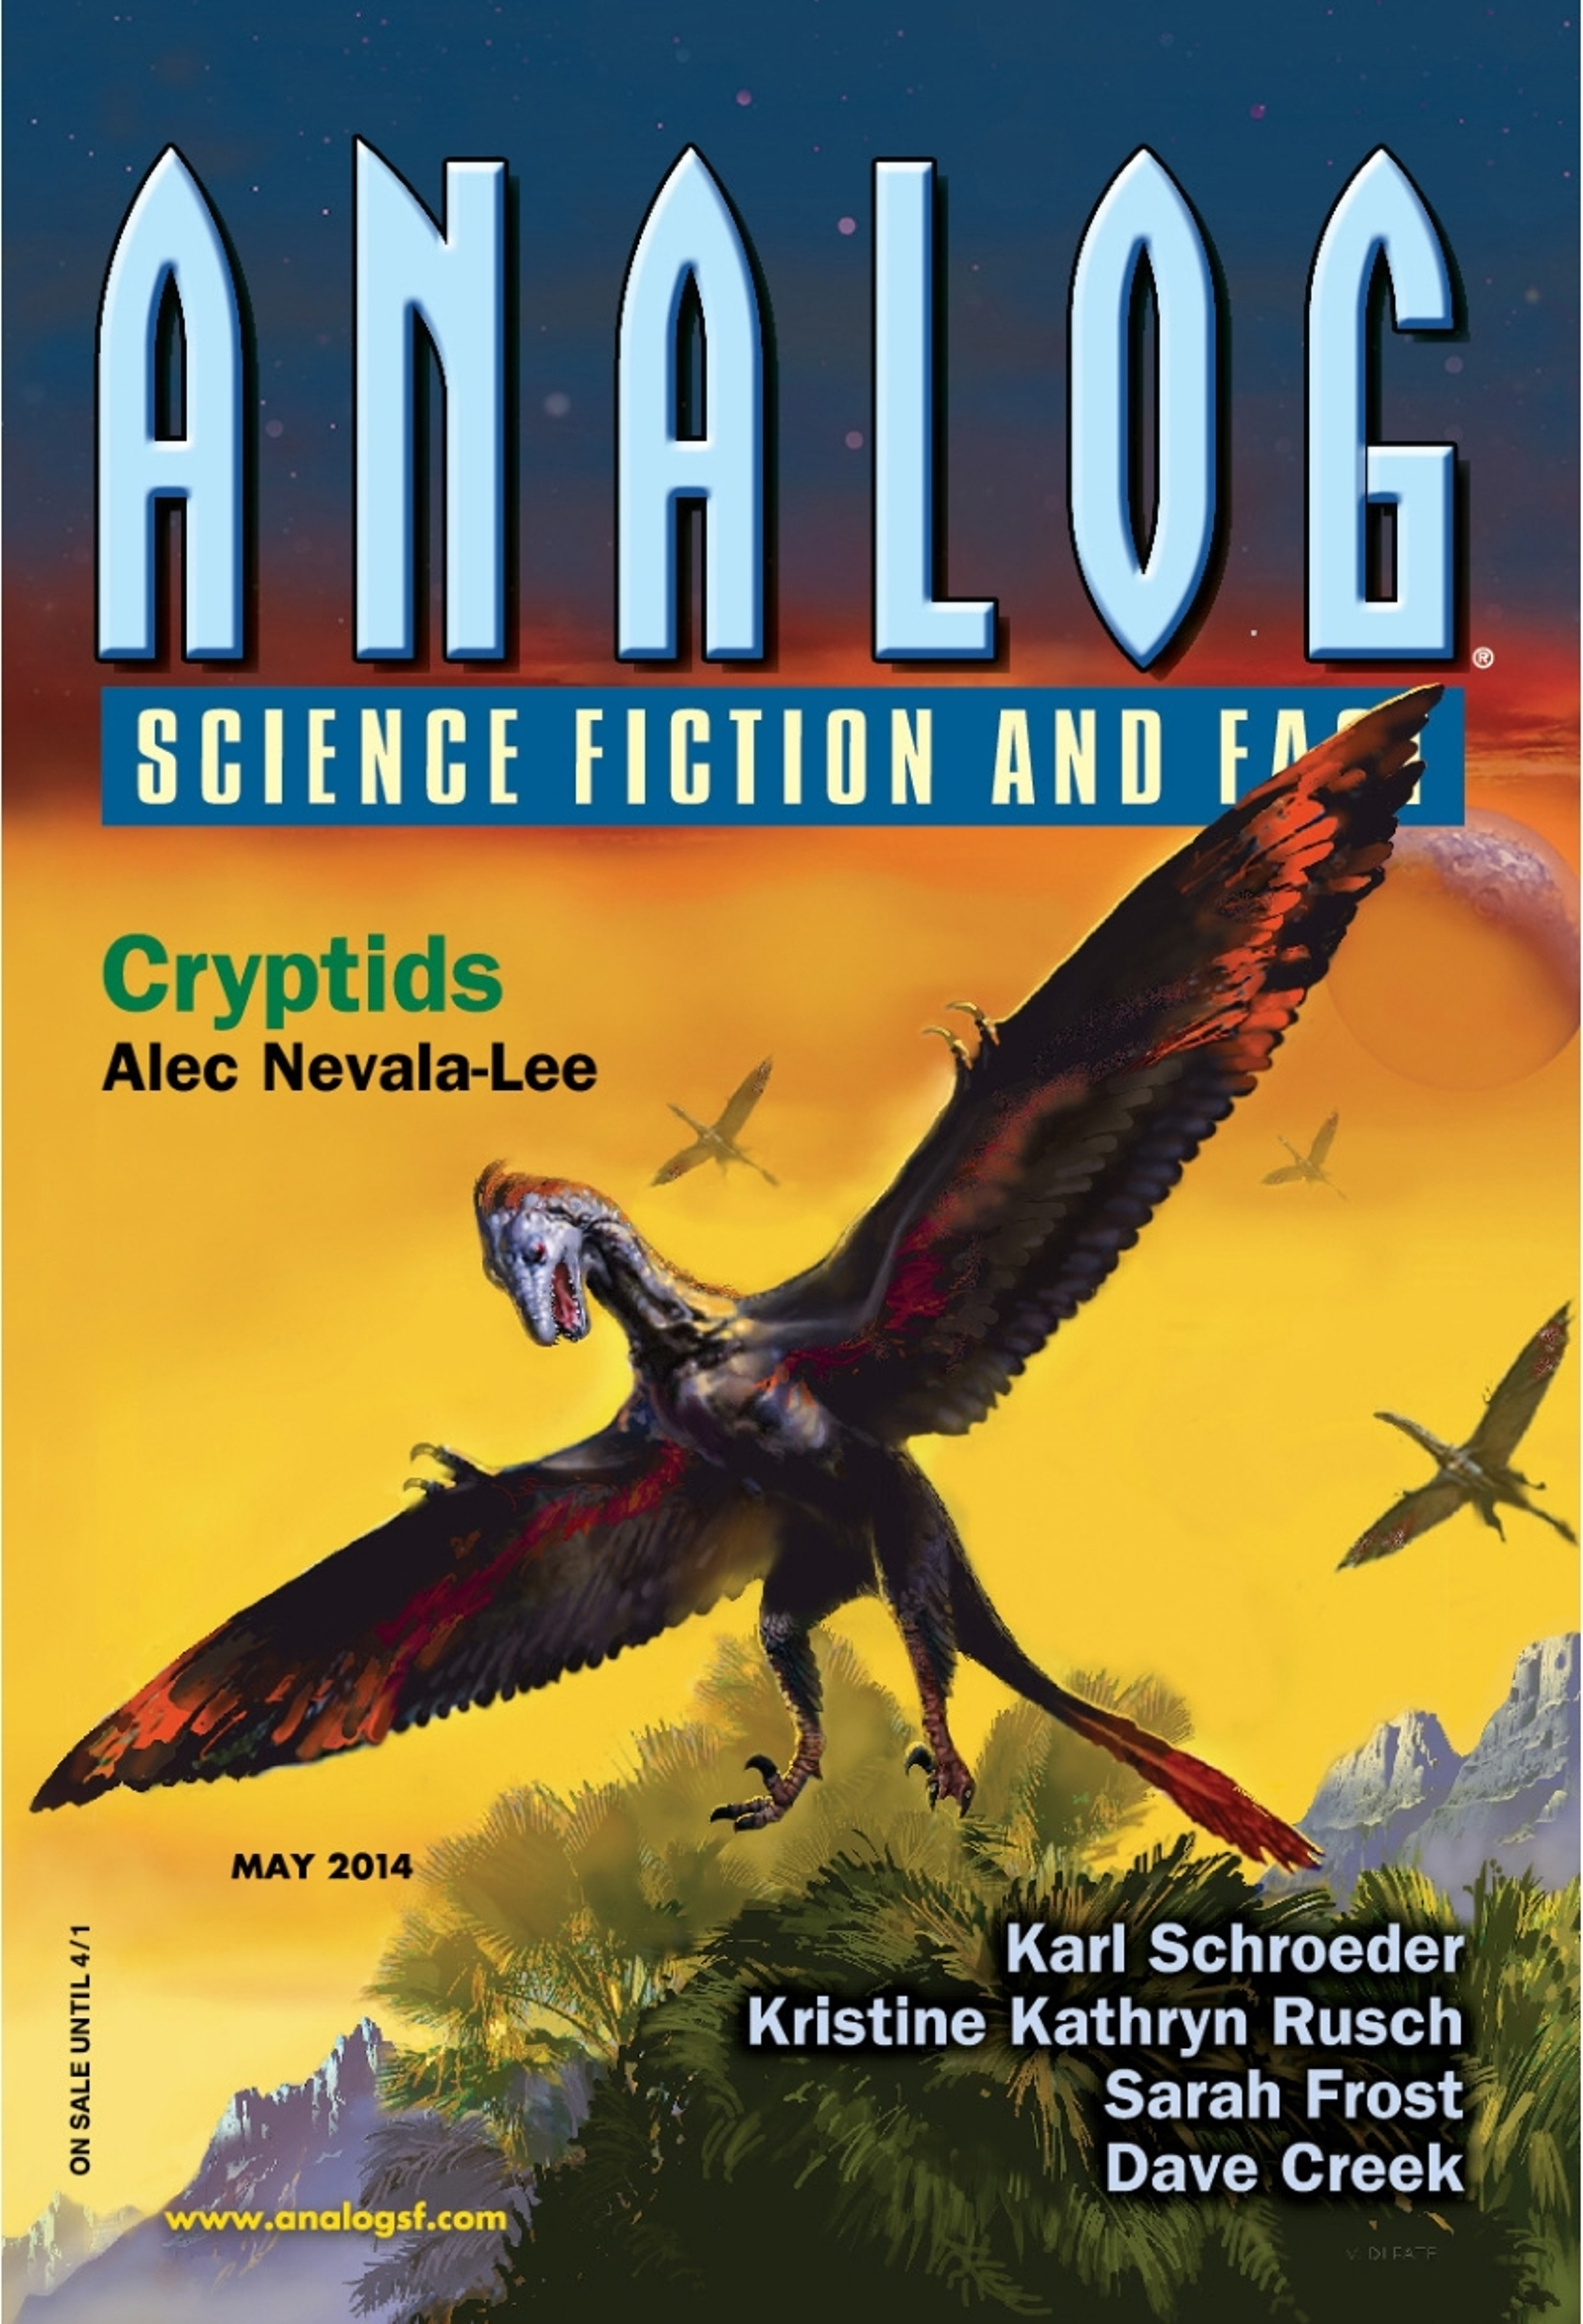 Analog Science Fiction and Fact - May 2014 free download